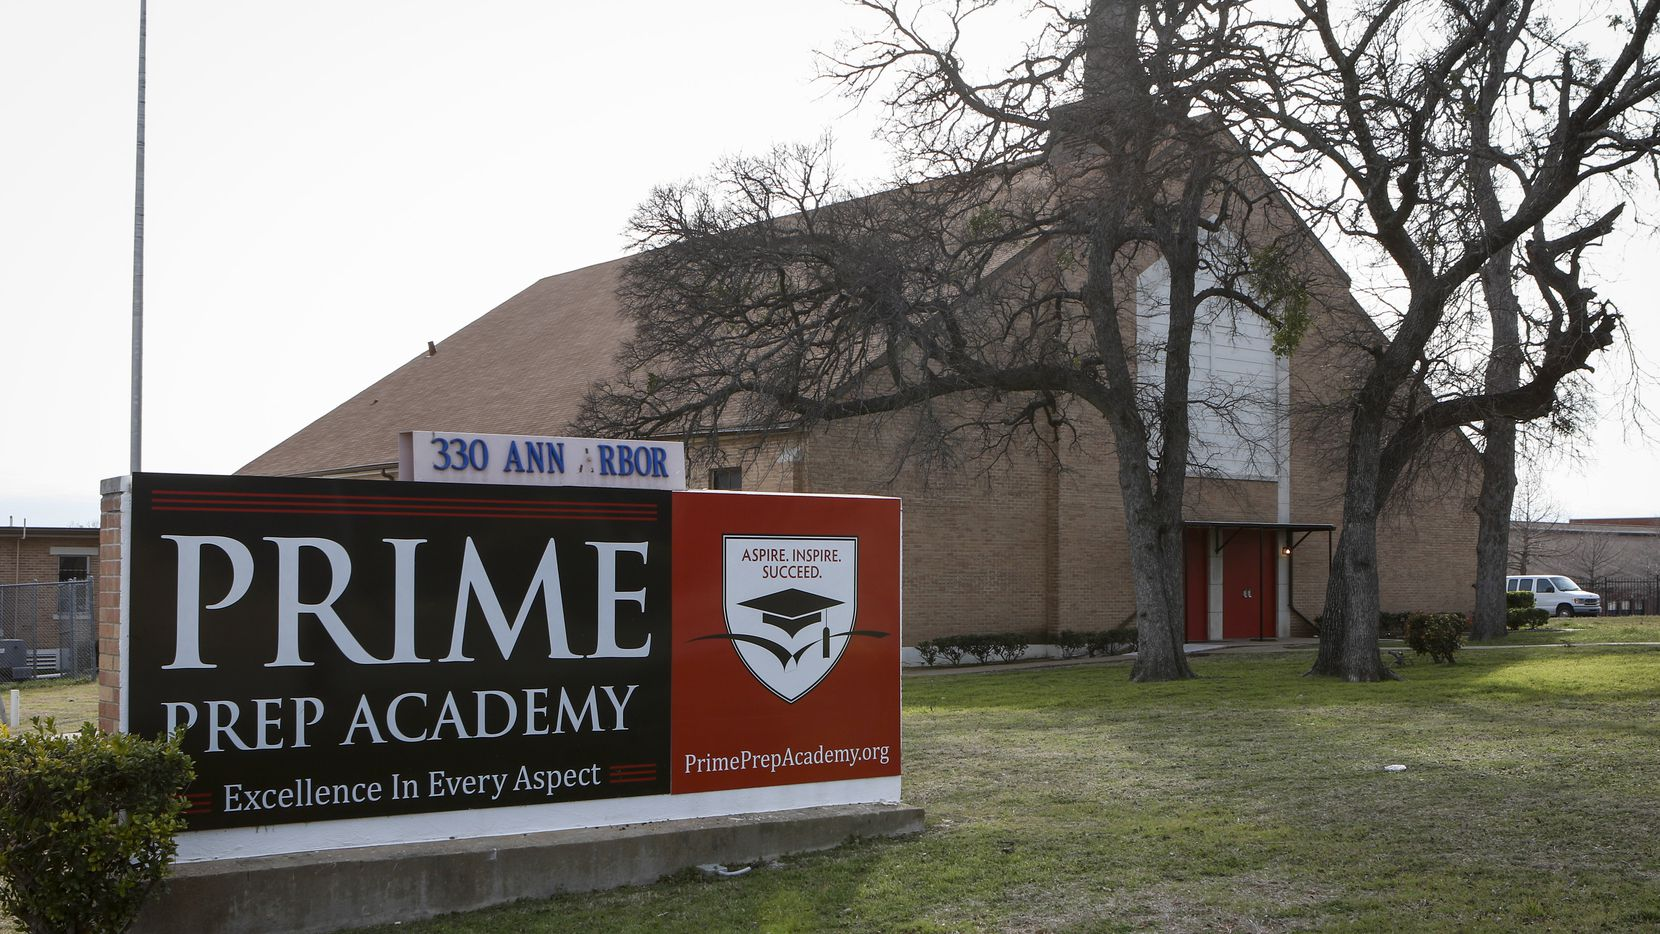 The Tarrant County district attorney's office is consulting with federal authorities about claims that more than 100 laptops were stolen from Prime Prep Academy.